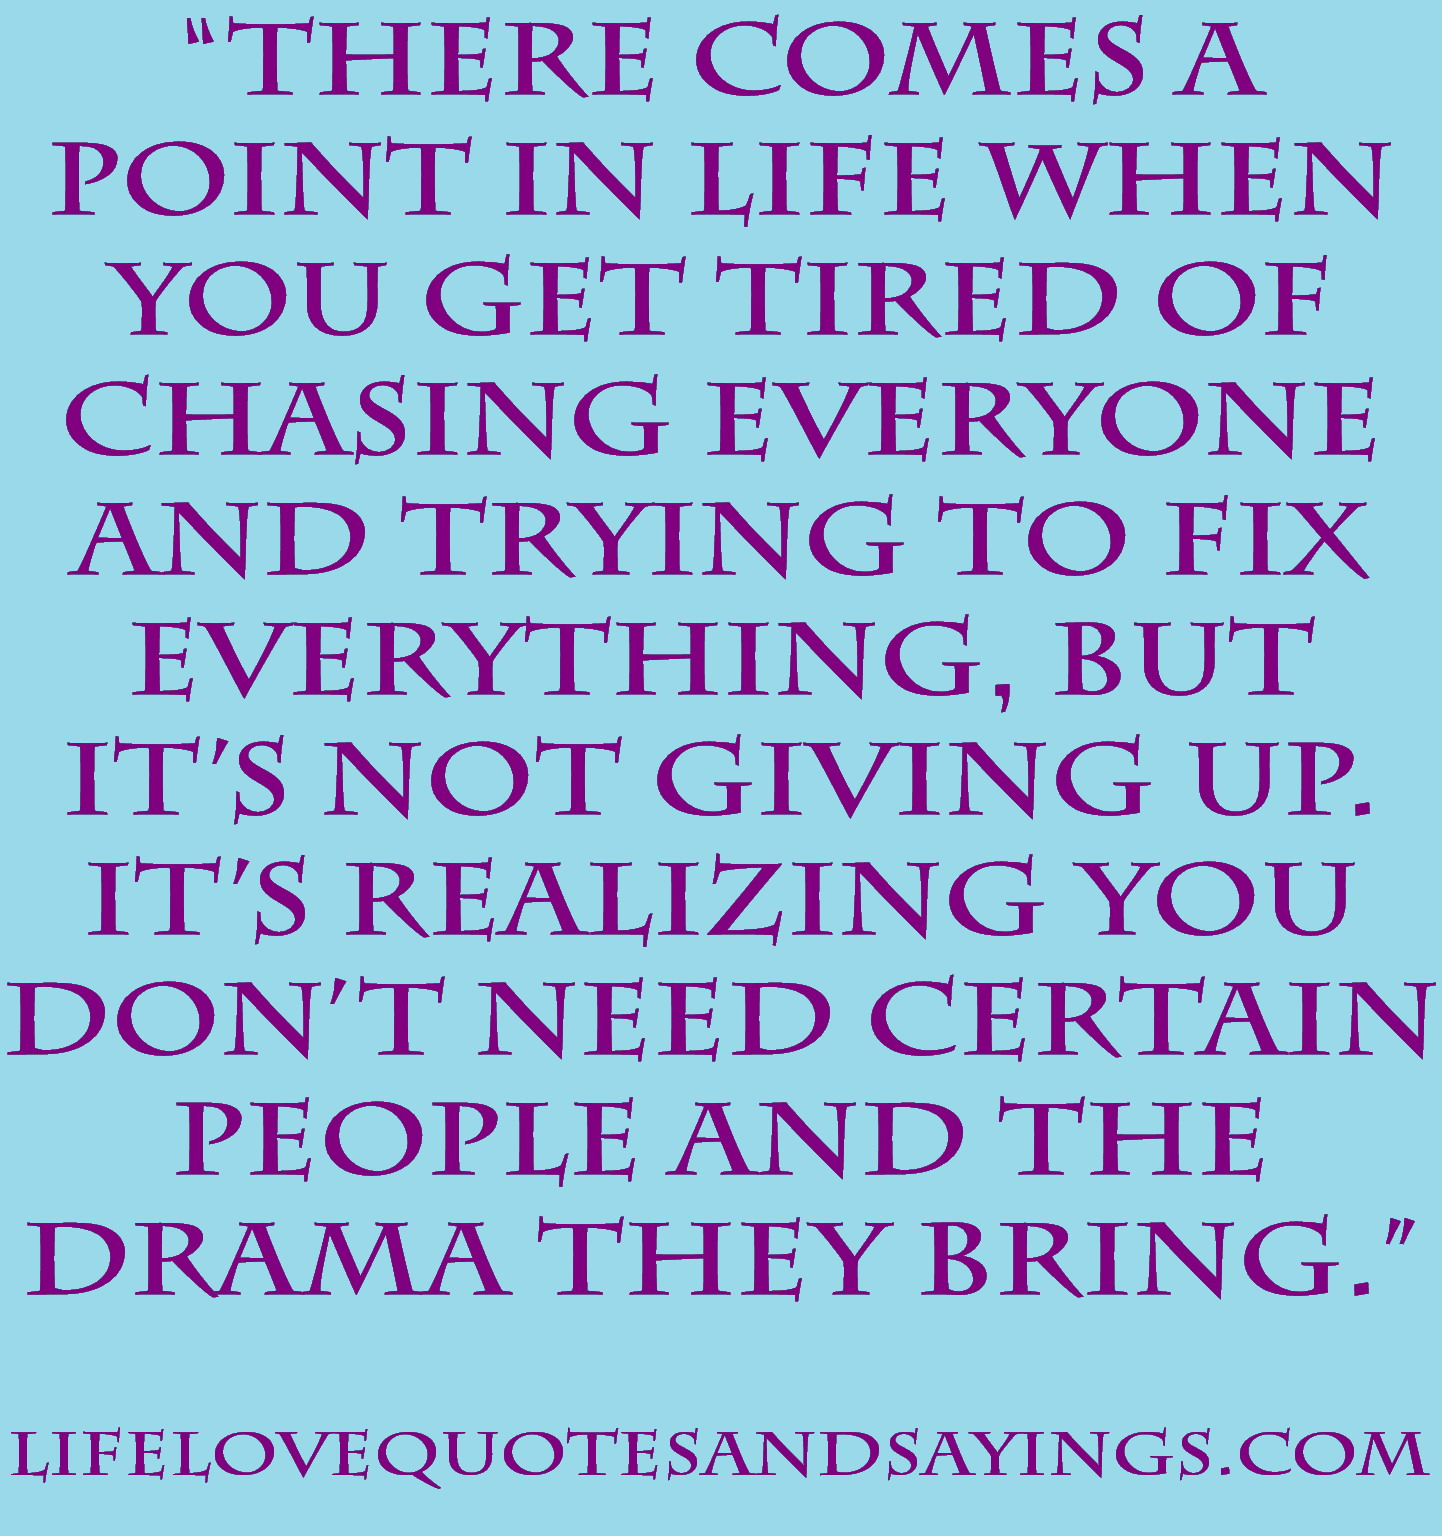 Quotes And Sayings About Life: Tired Of Life Quotes And Sayings. QuotesGram